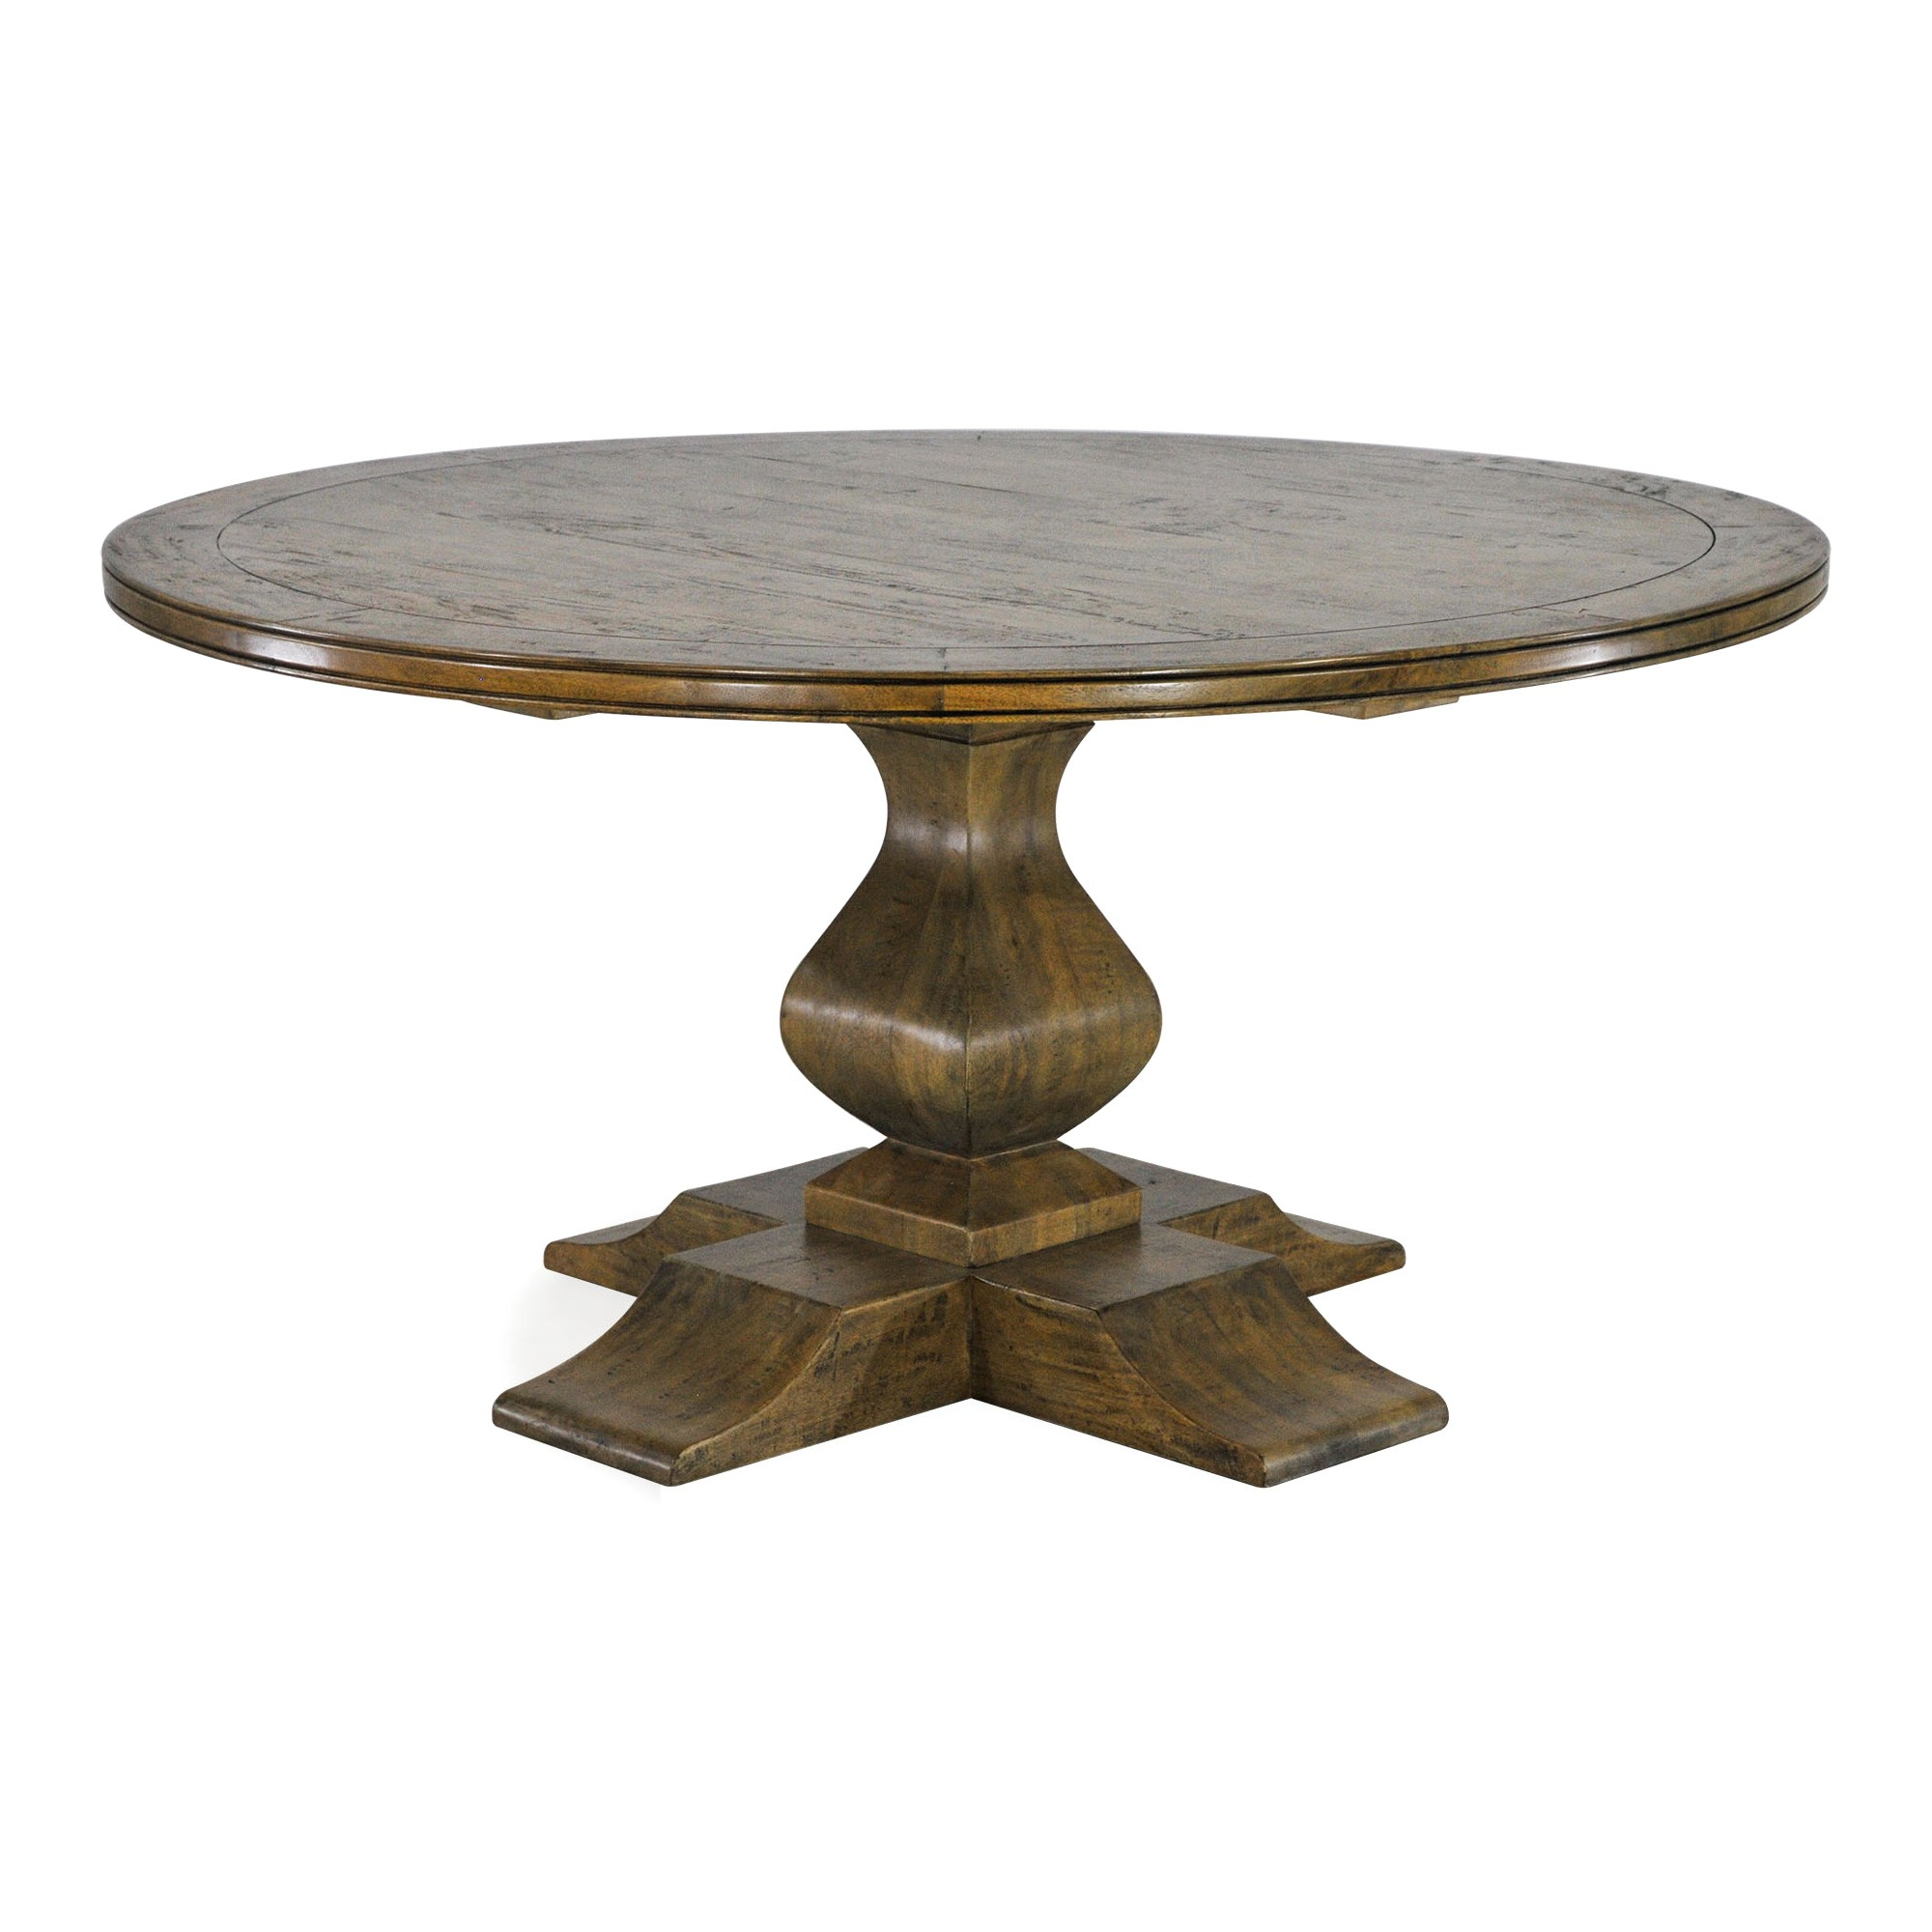 Orleans Mango Wood Round Pedestal Dining Table, 152cm